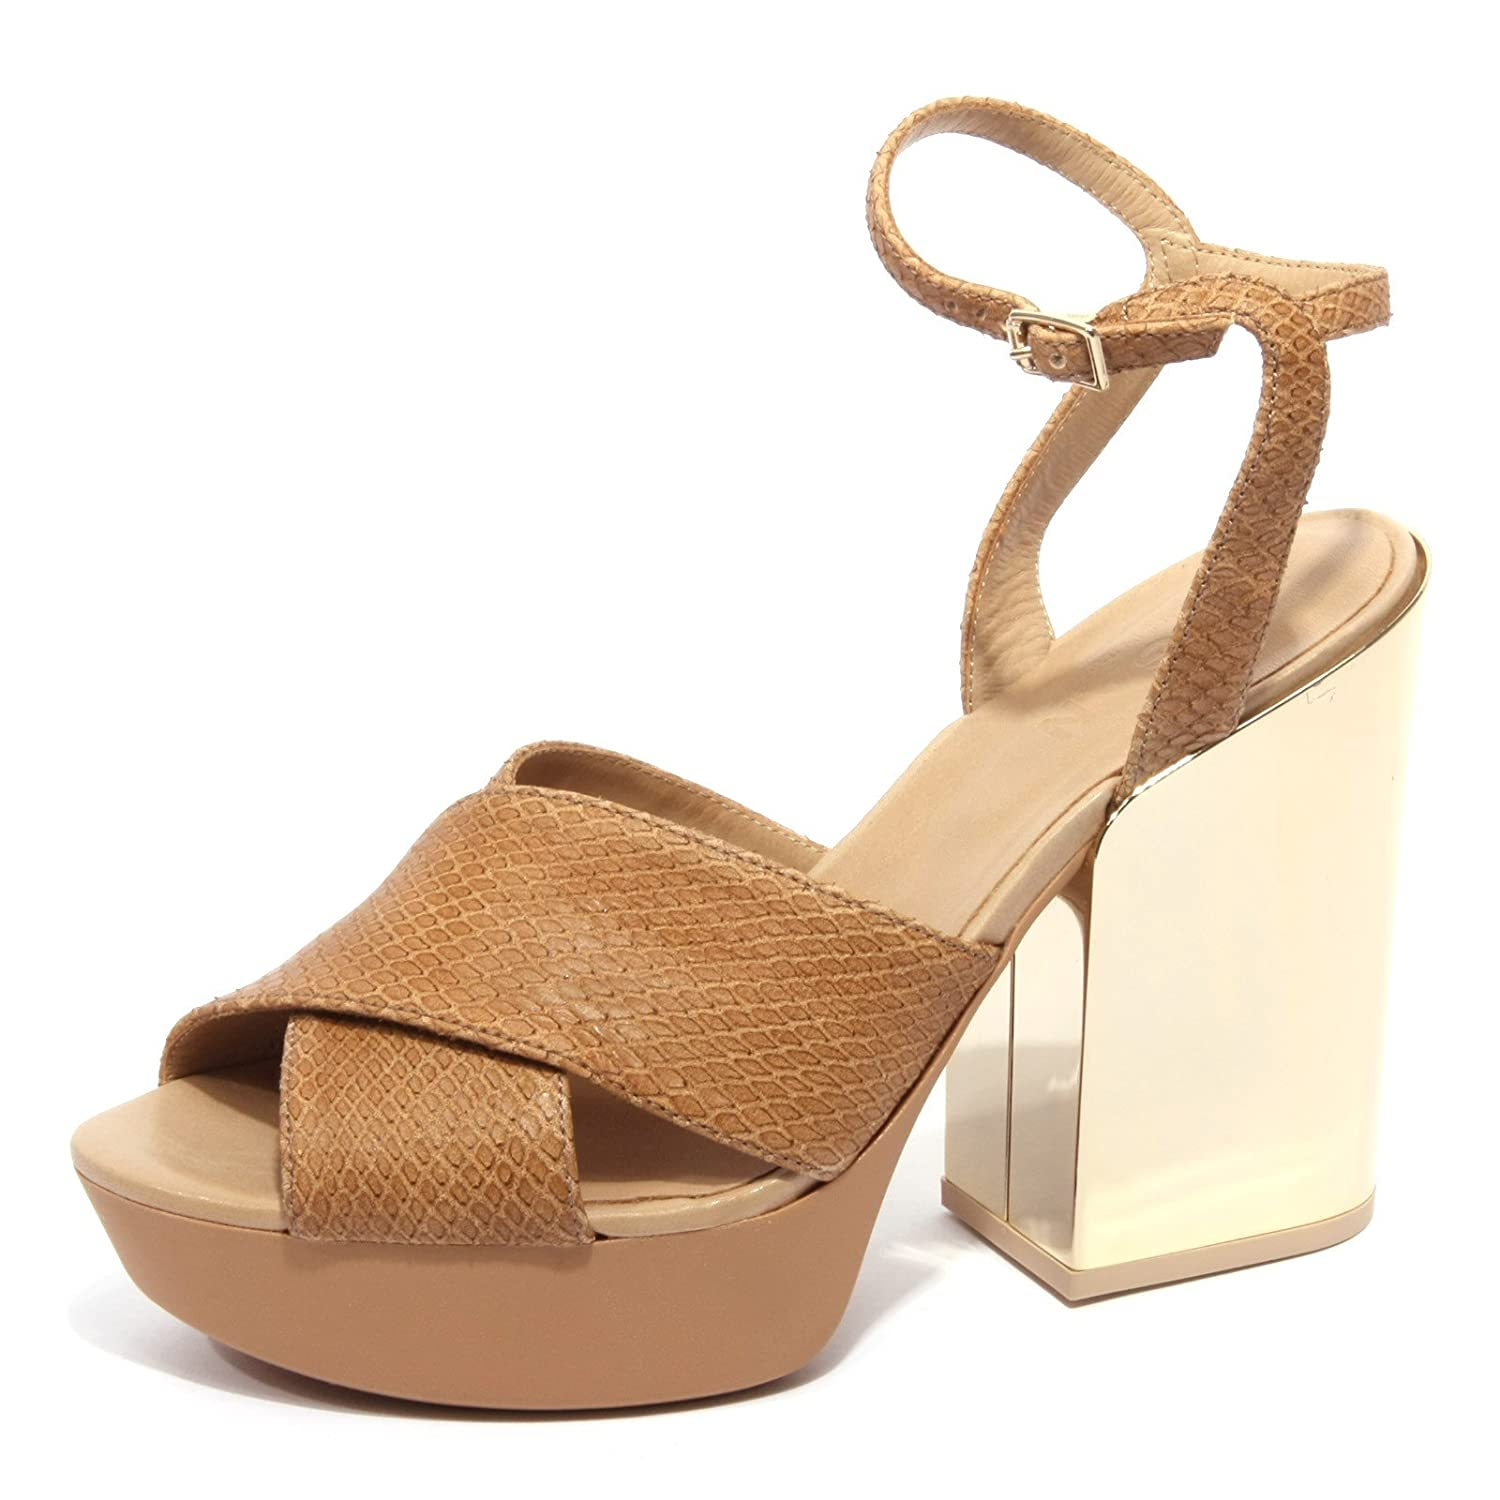 B1738 sandalo donna HOGAN scarpa beige shoes women [38]